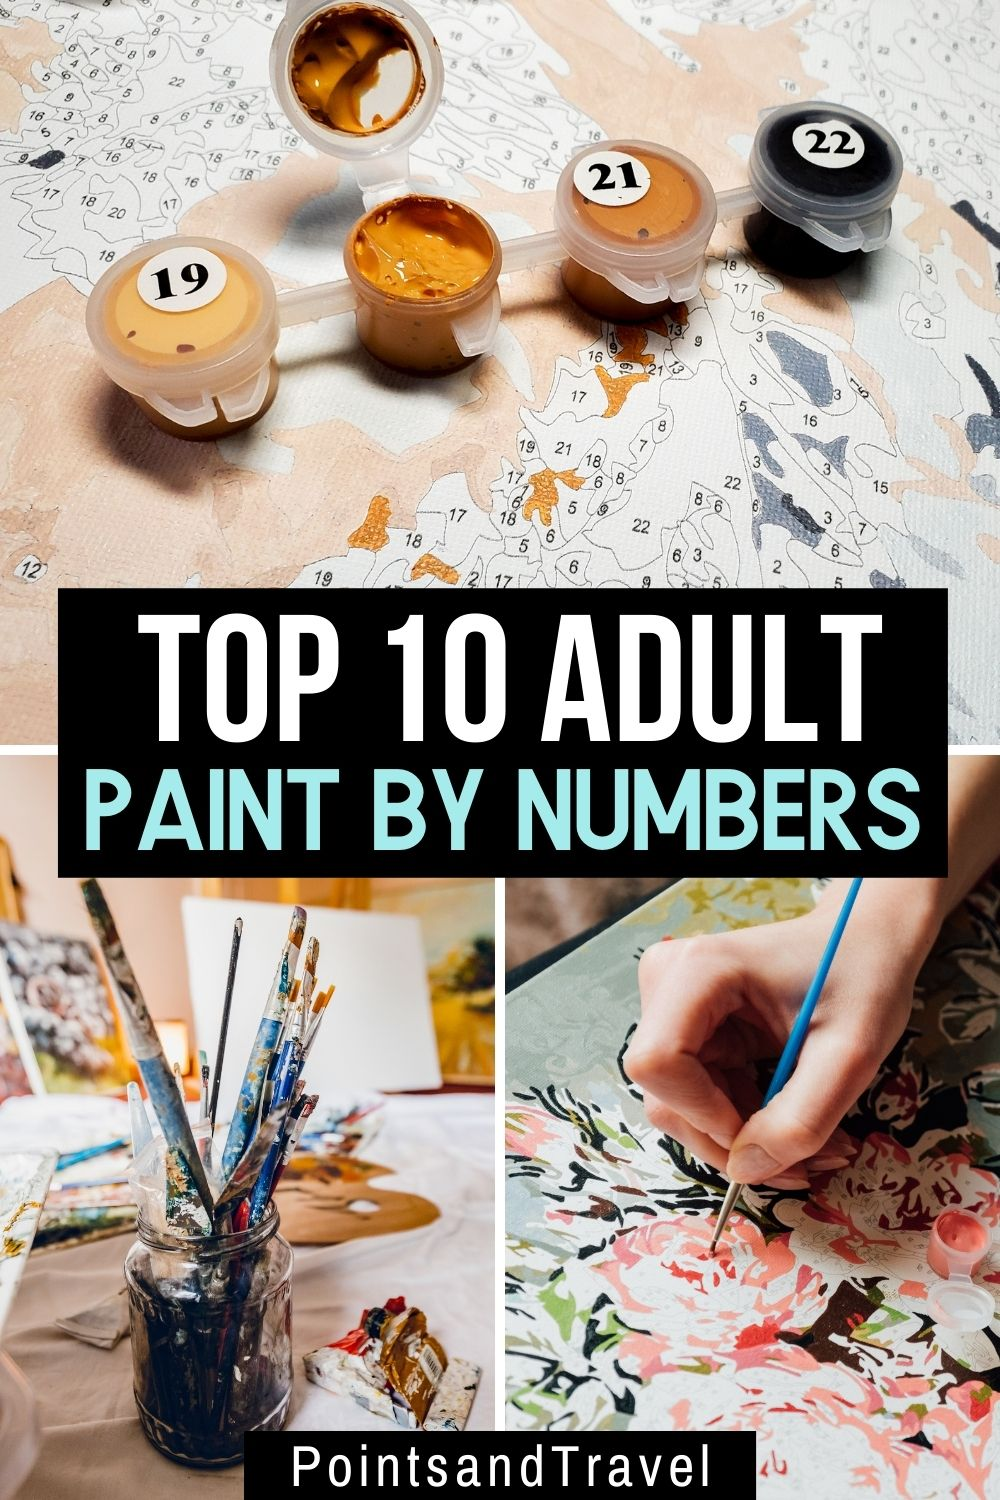 painting by numbers, paint by numbers, paint by numbers, paint by number, adult paint by number,  #paint